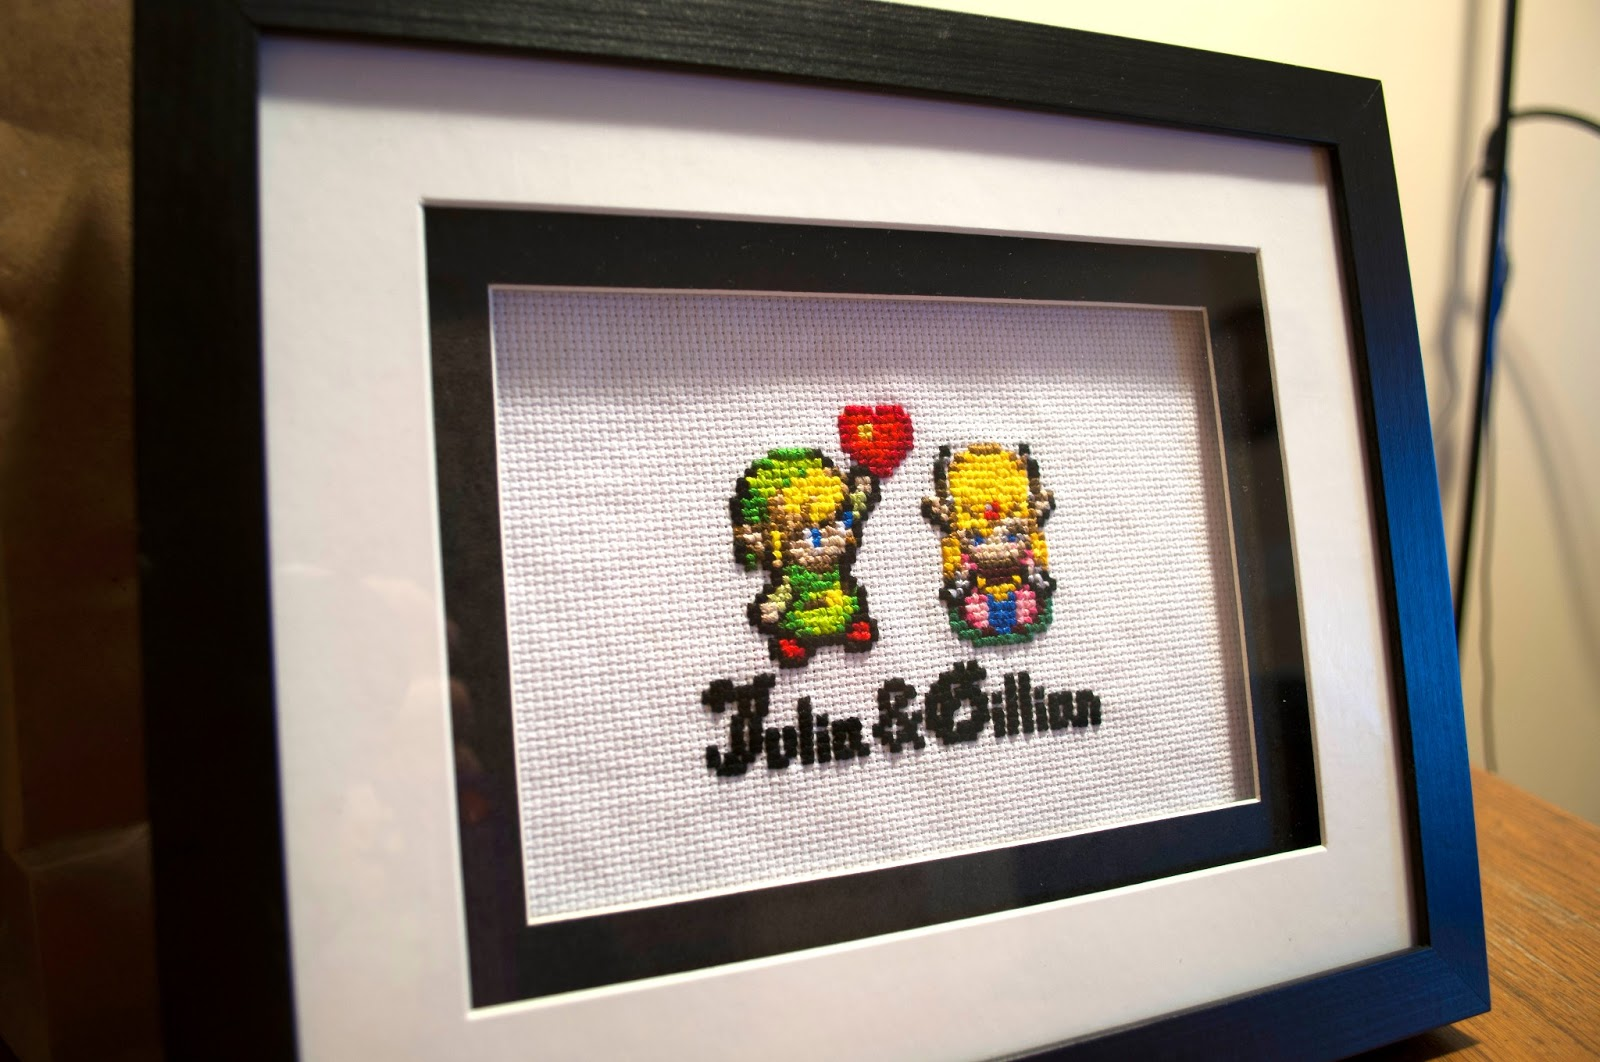 Jeffalo zelda cross stitch i found this matted frame at hobby lobby during a 50 off sale i ended up hot gluing white fabric to the cardboard backing and pinning the stitch to that gumiabroncs Images